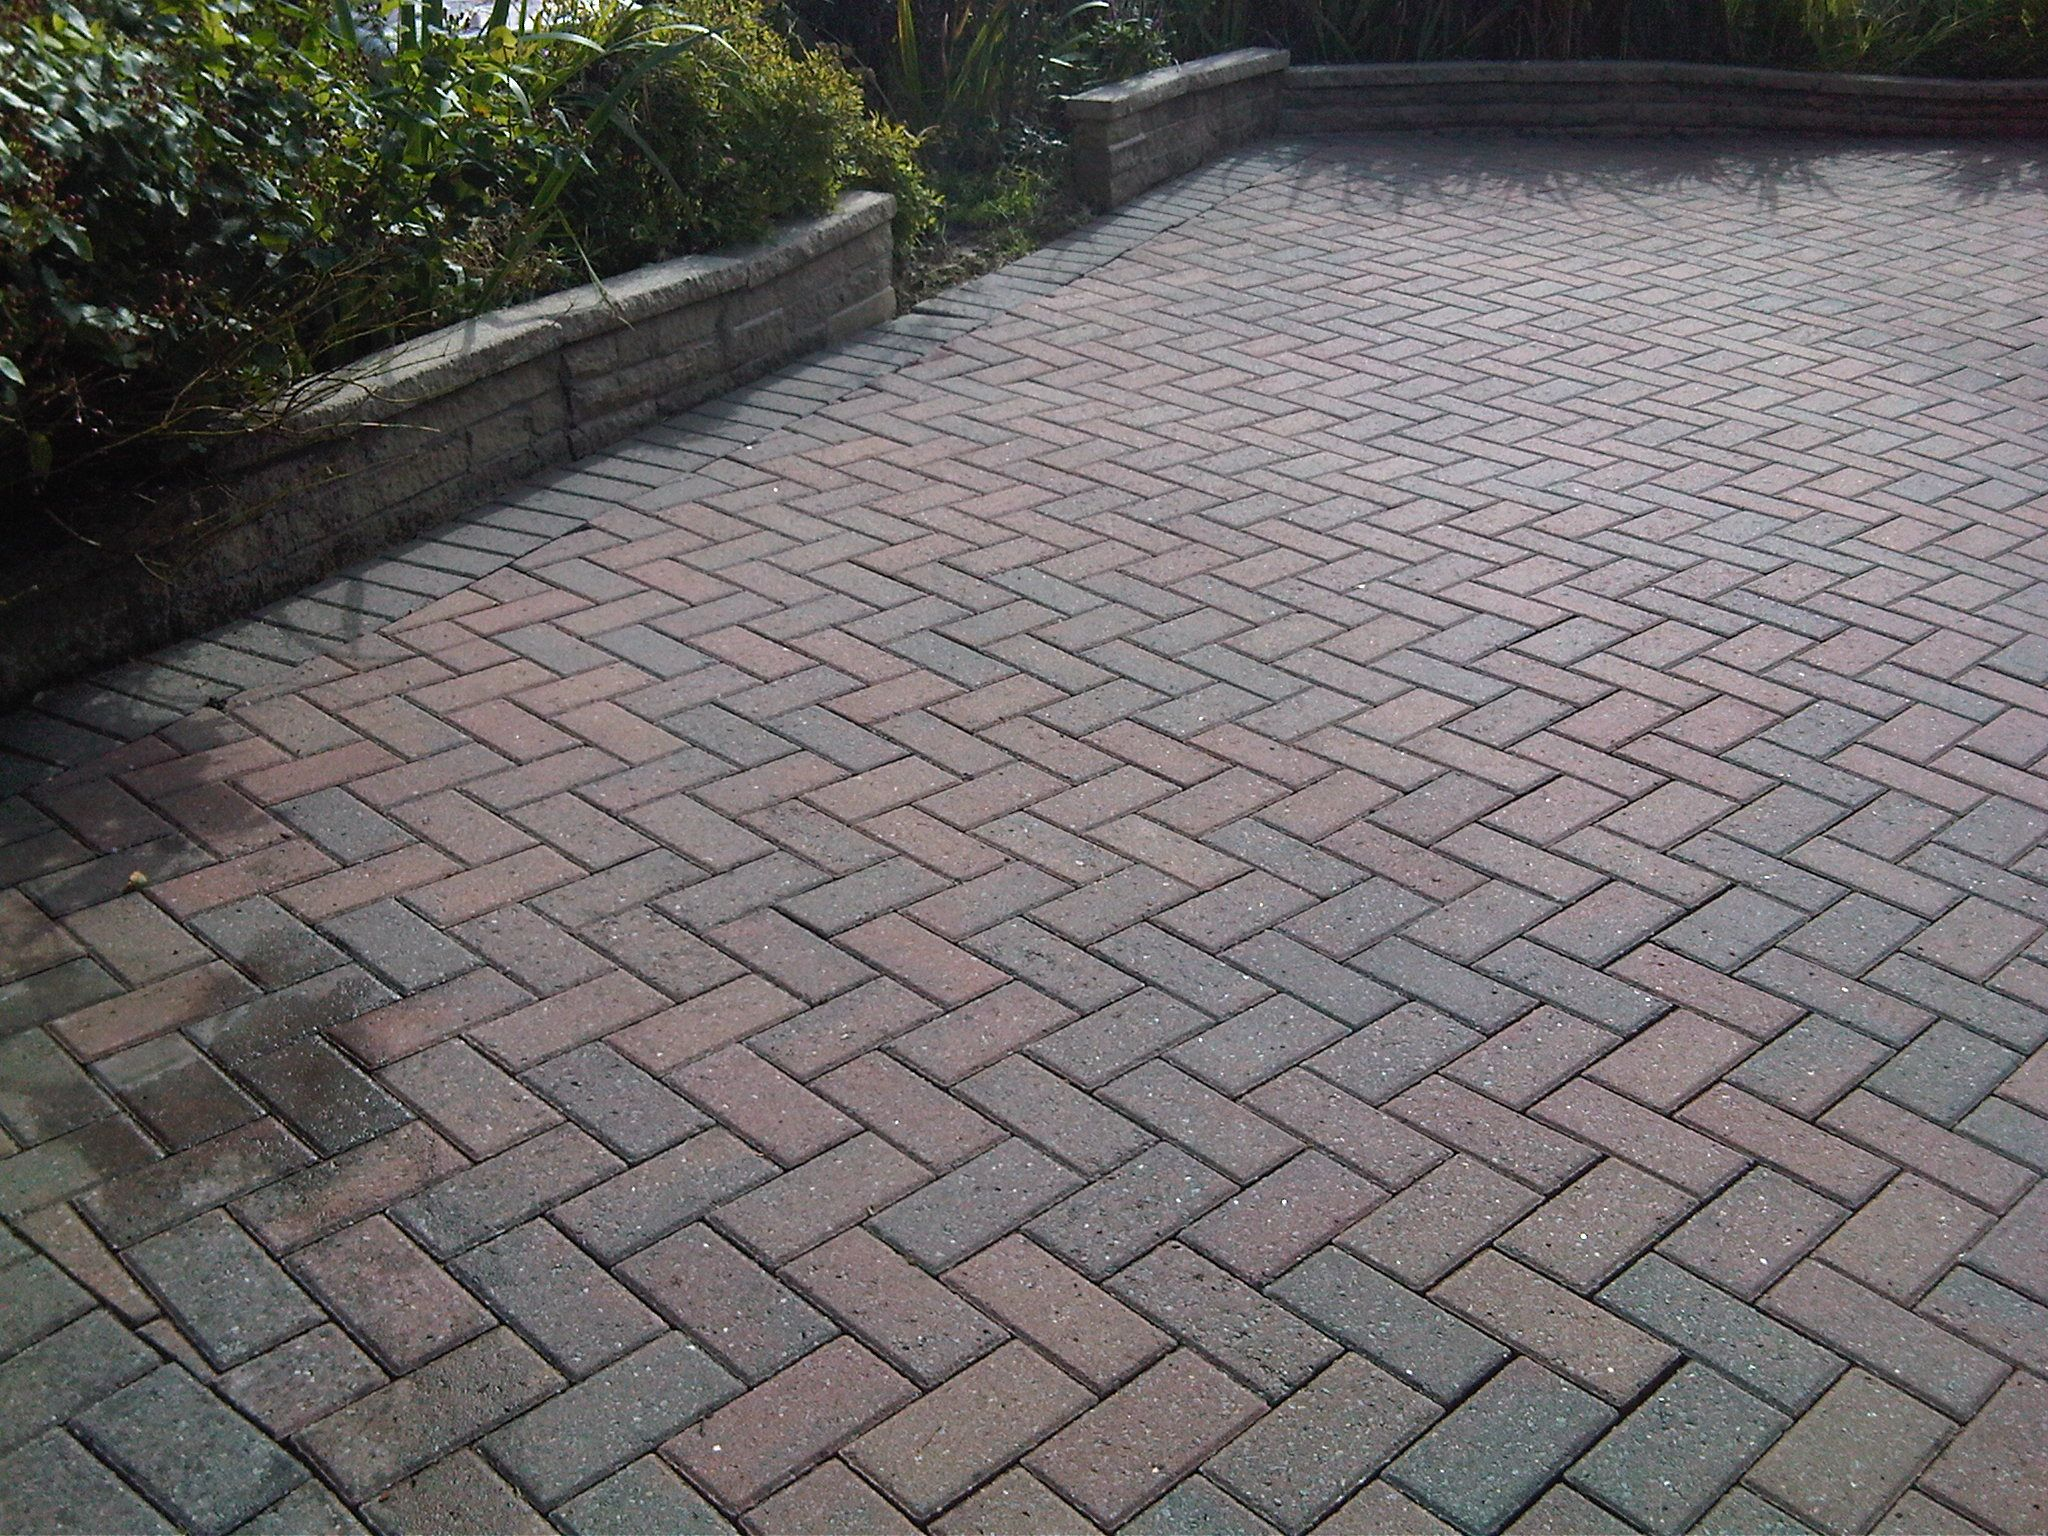 Concrete Block Driveway Paving Just Cleaned 1024x768 Cleaning Driveways And Exterior